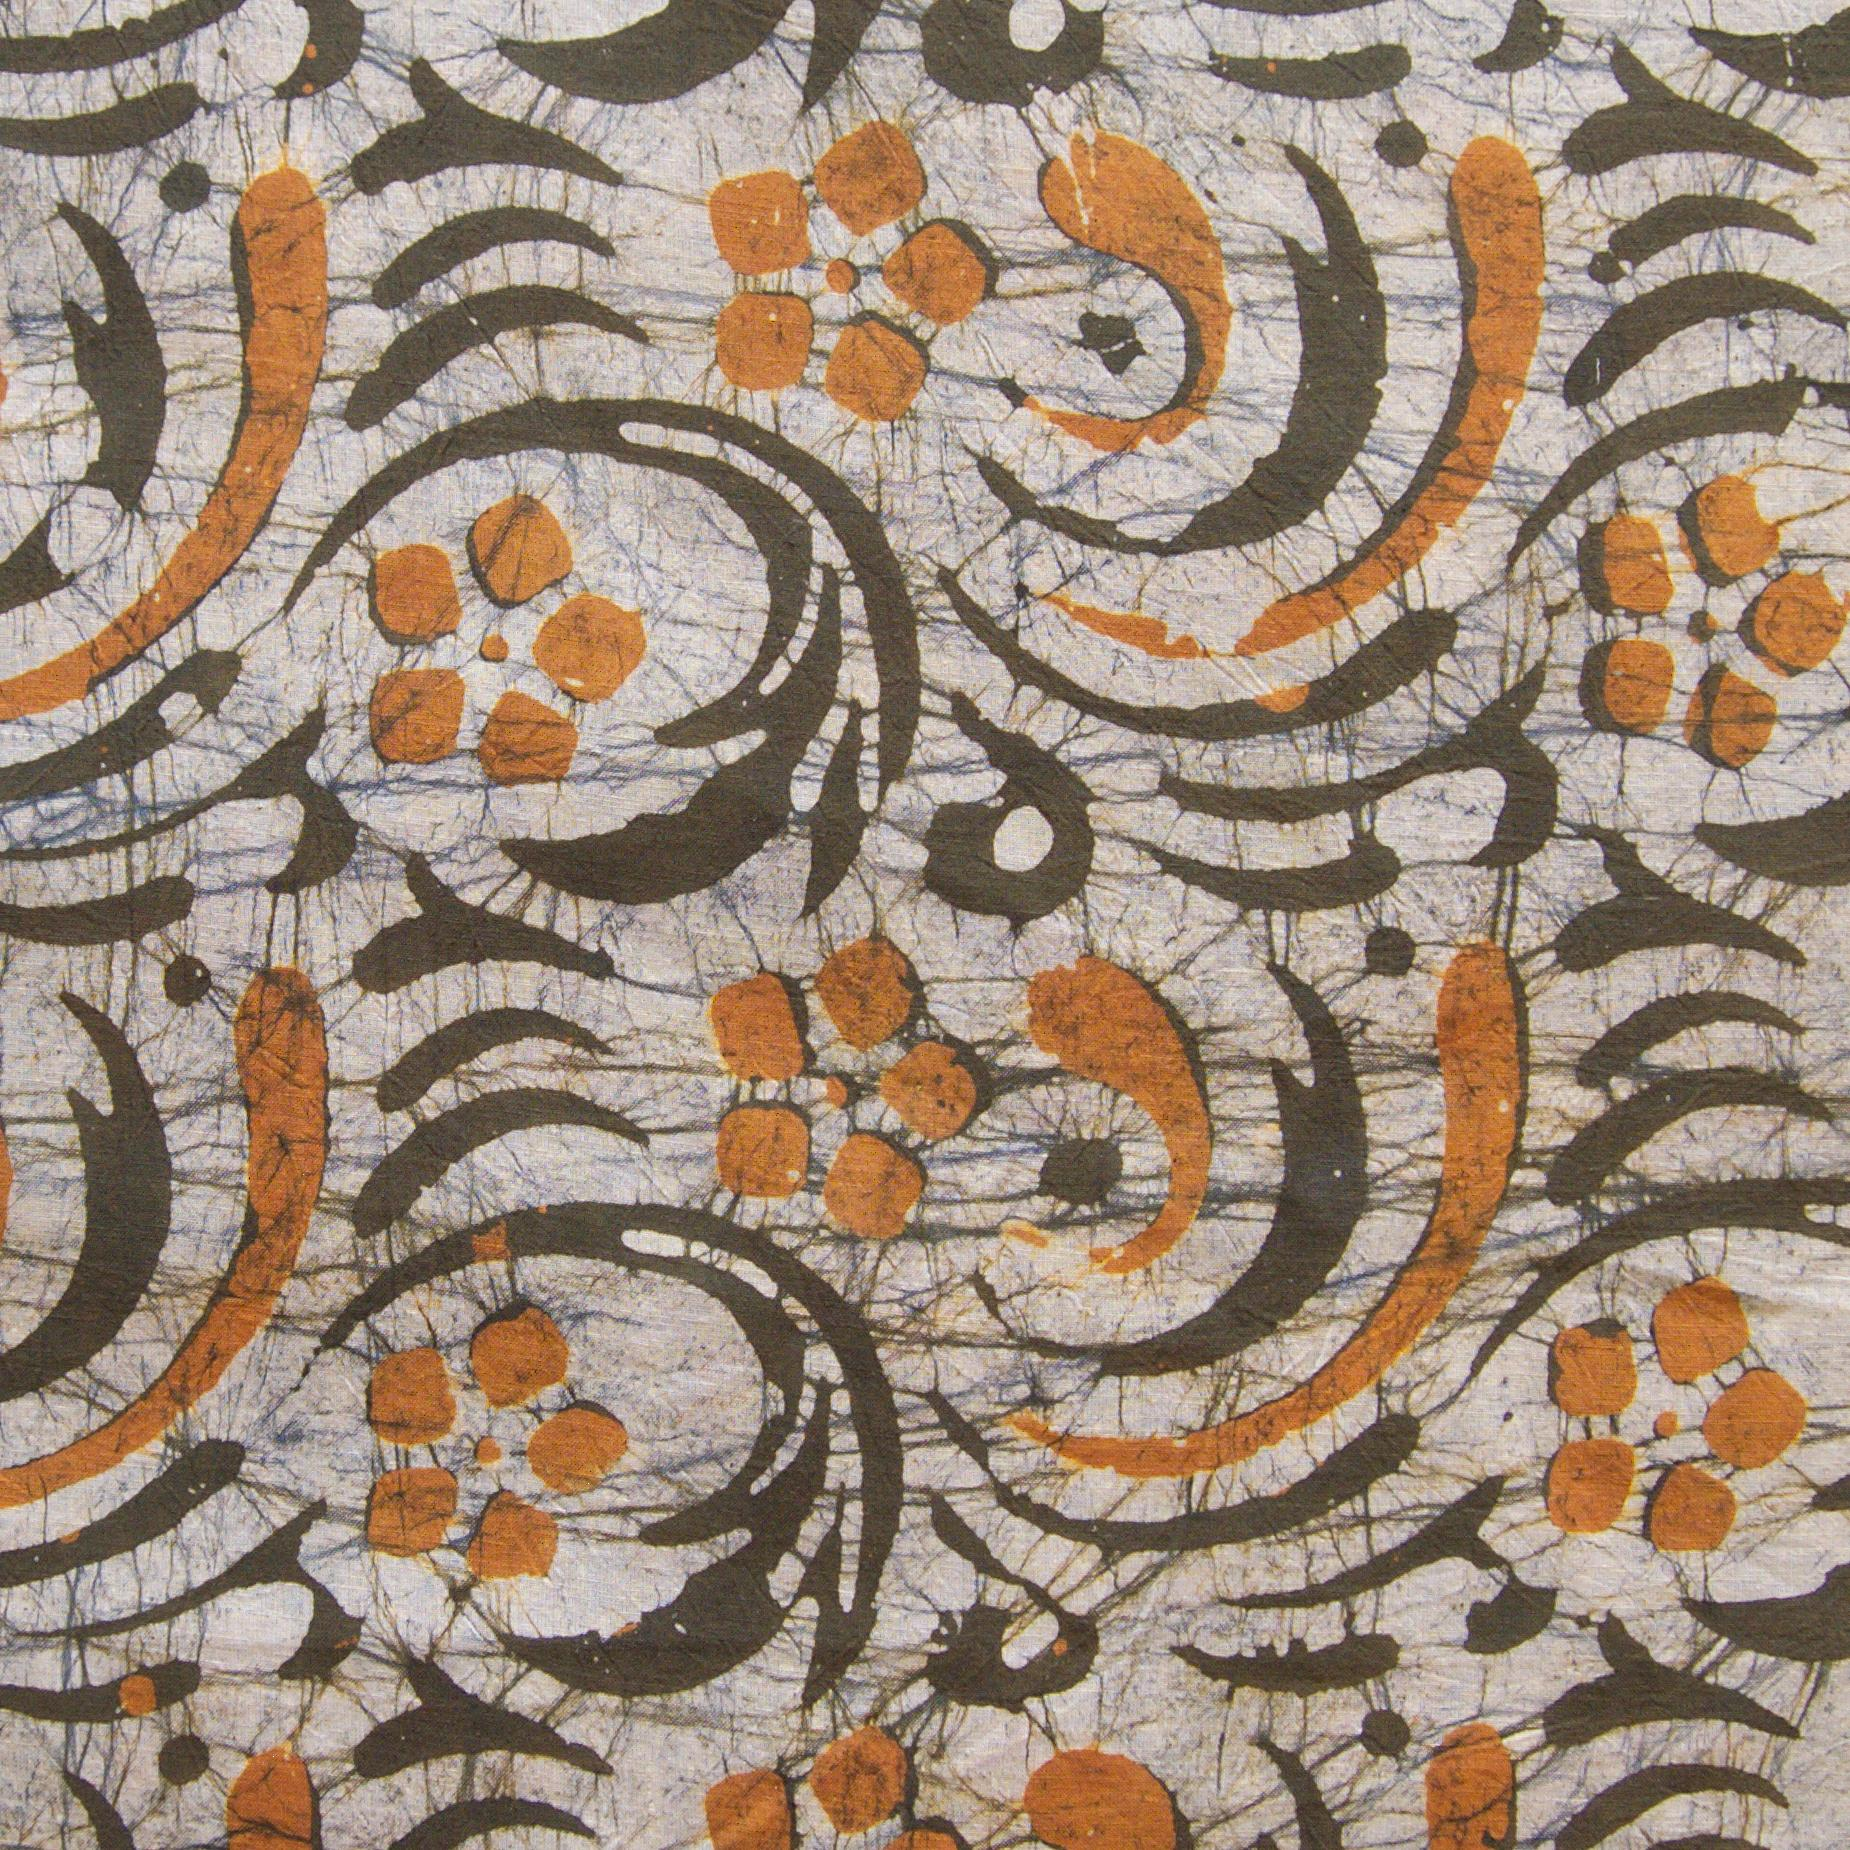 3 - SHA18 - 100% Block-Printed Batik Cotton Fabric From India - Stirred Not Shaken Motif - Flat - Live